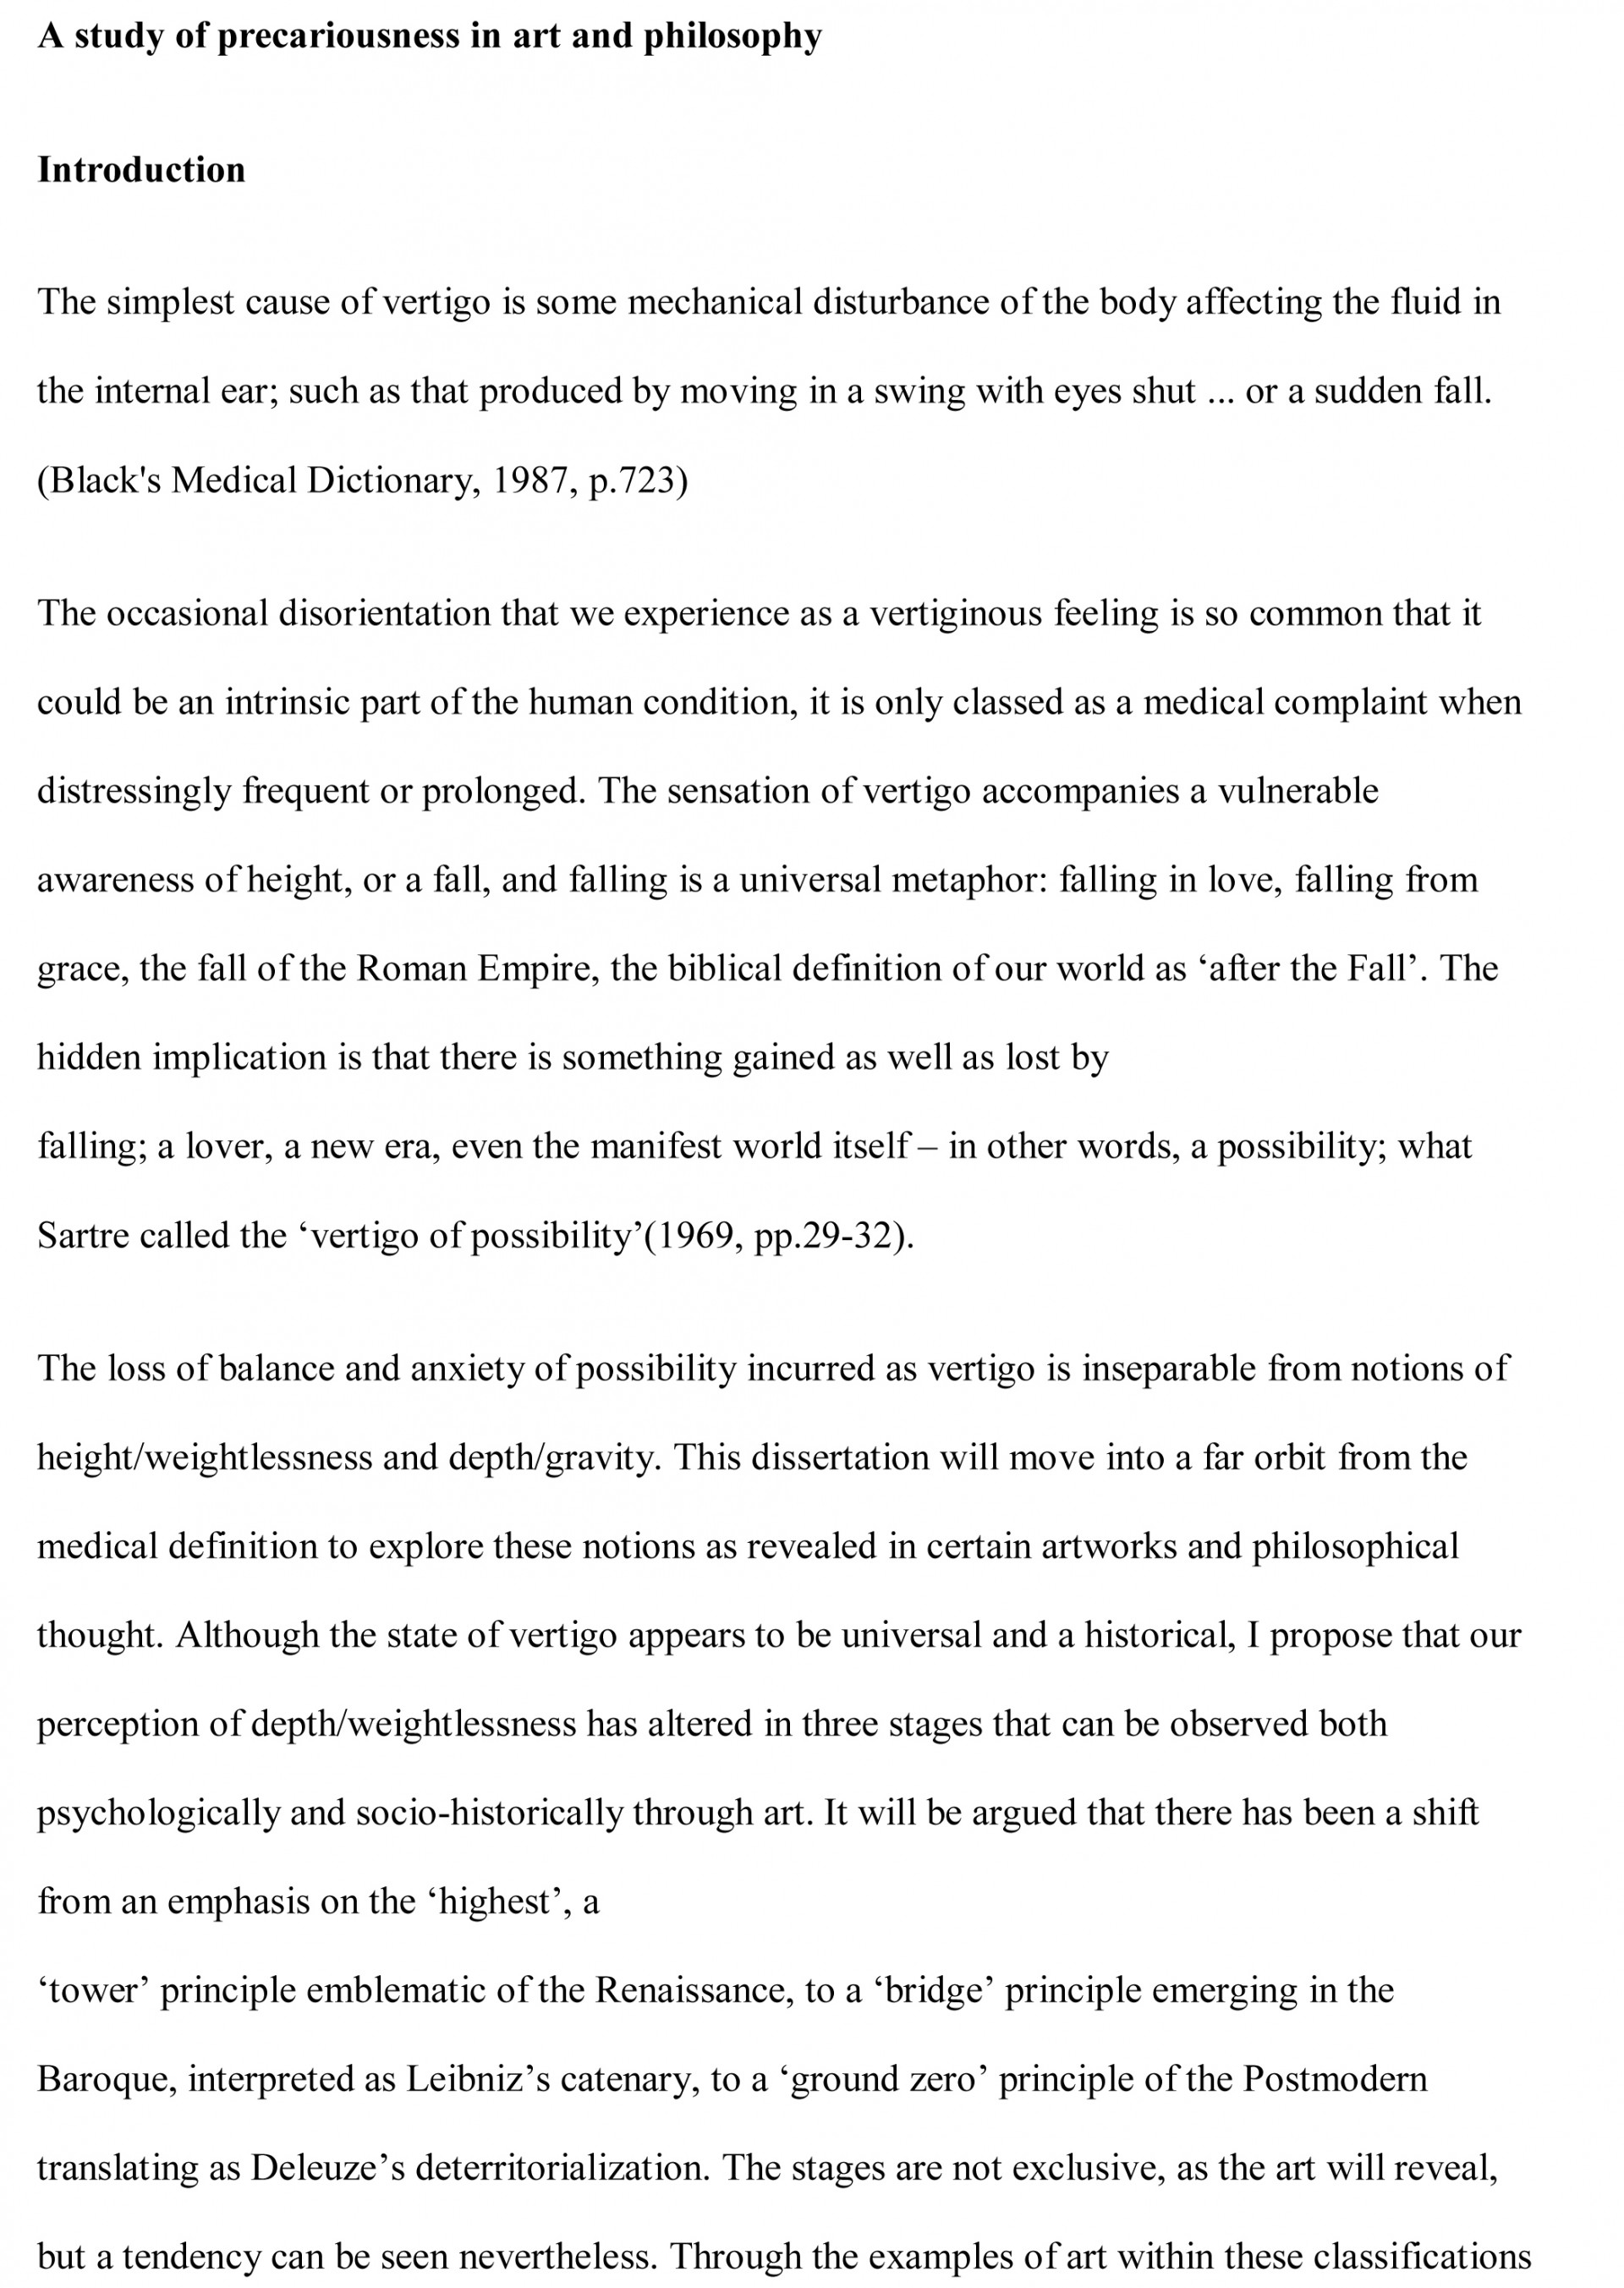 008 Essay Vs Paper Art Coursework Free Sample Breathtaking Term Personal Research What Is The Difference Persuasive 1920